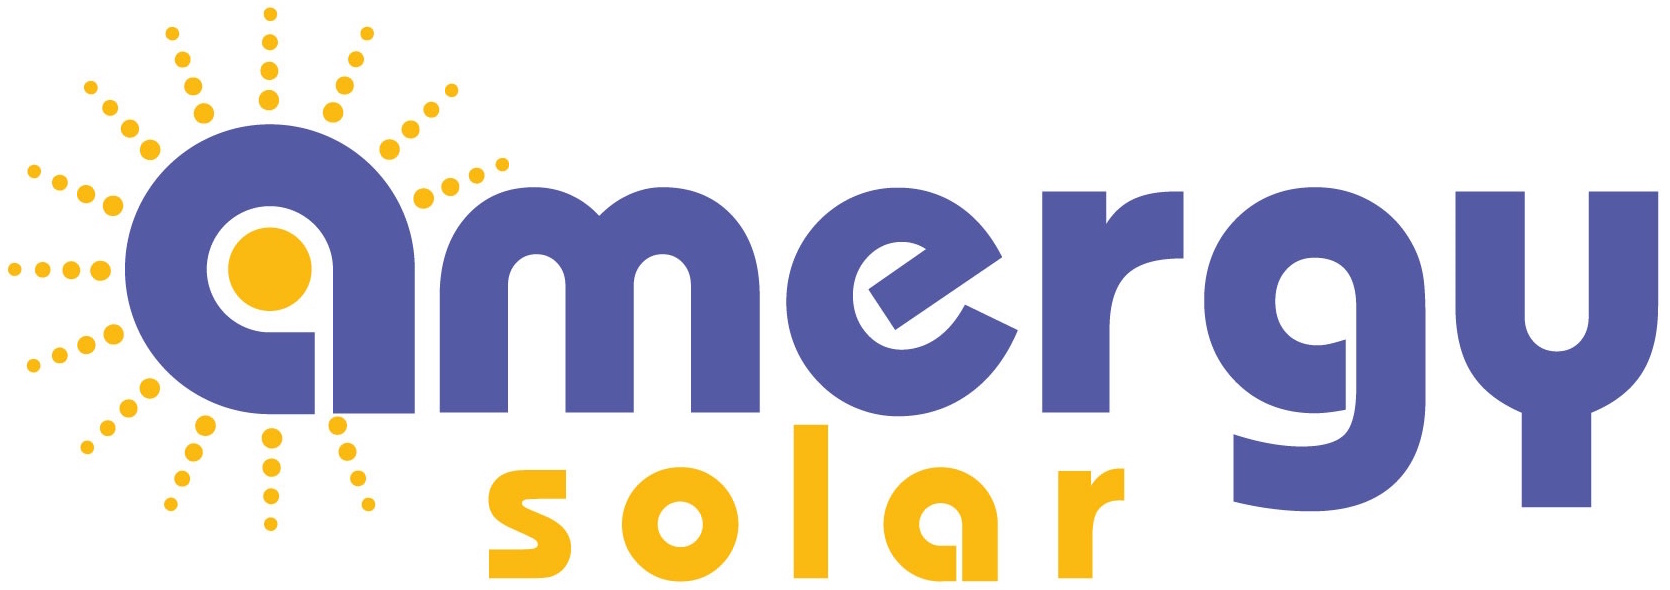 """Amergy Solar  - A 2013 and 2014 SunPower """"Residential National Top Producer of the Year"""" recipient, Amergy represents one of the East Coast's largest installers. They offer a diverse suite of panels and financing options. With innovative international operations, Amergy offers best in the business turnaround time that optimizes the installation process."""